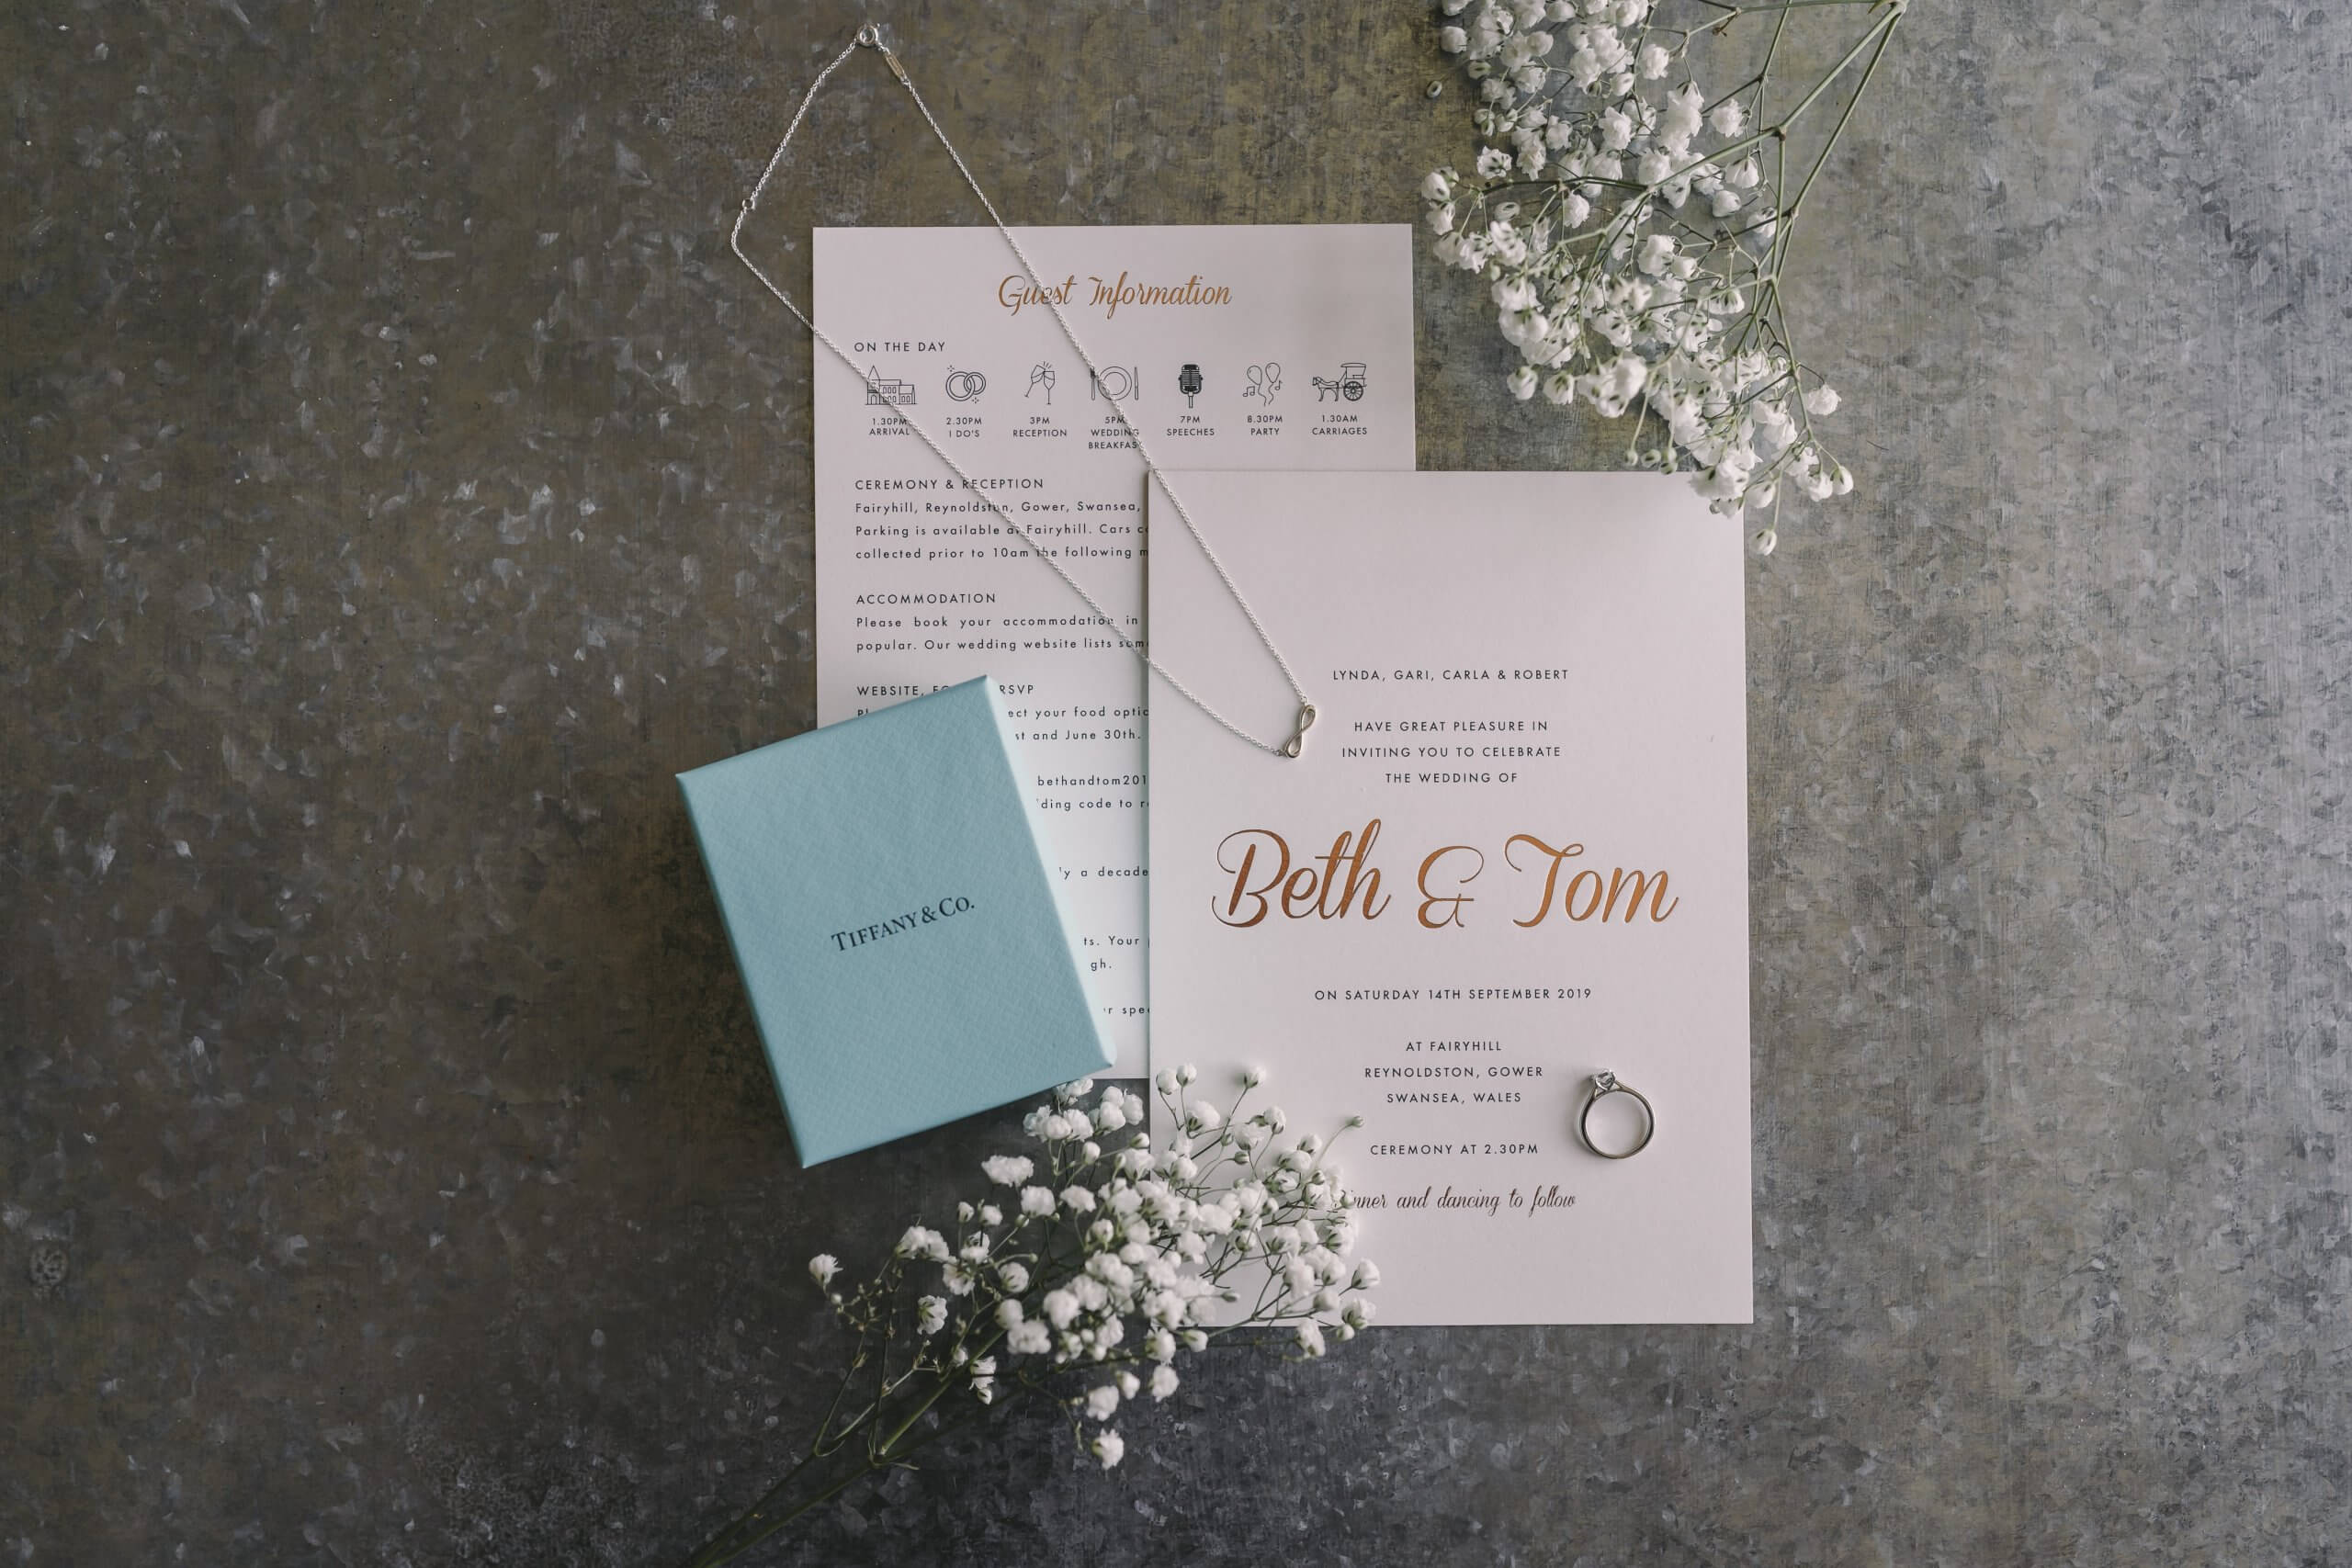 Fairyhill wedding invite